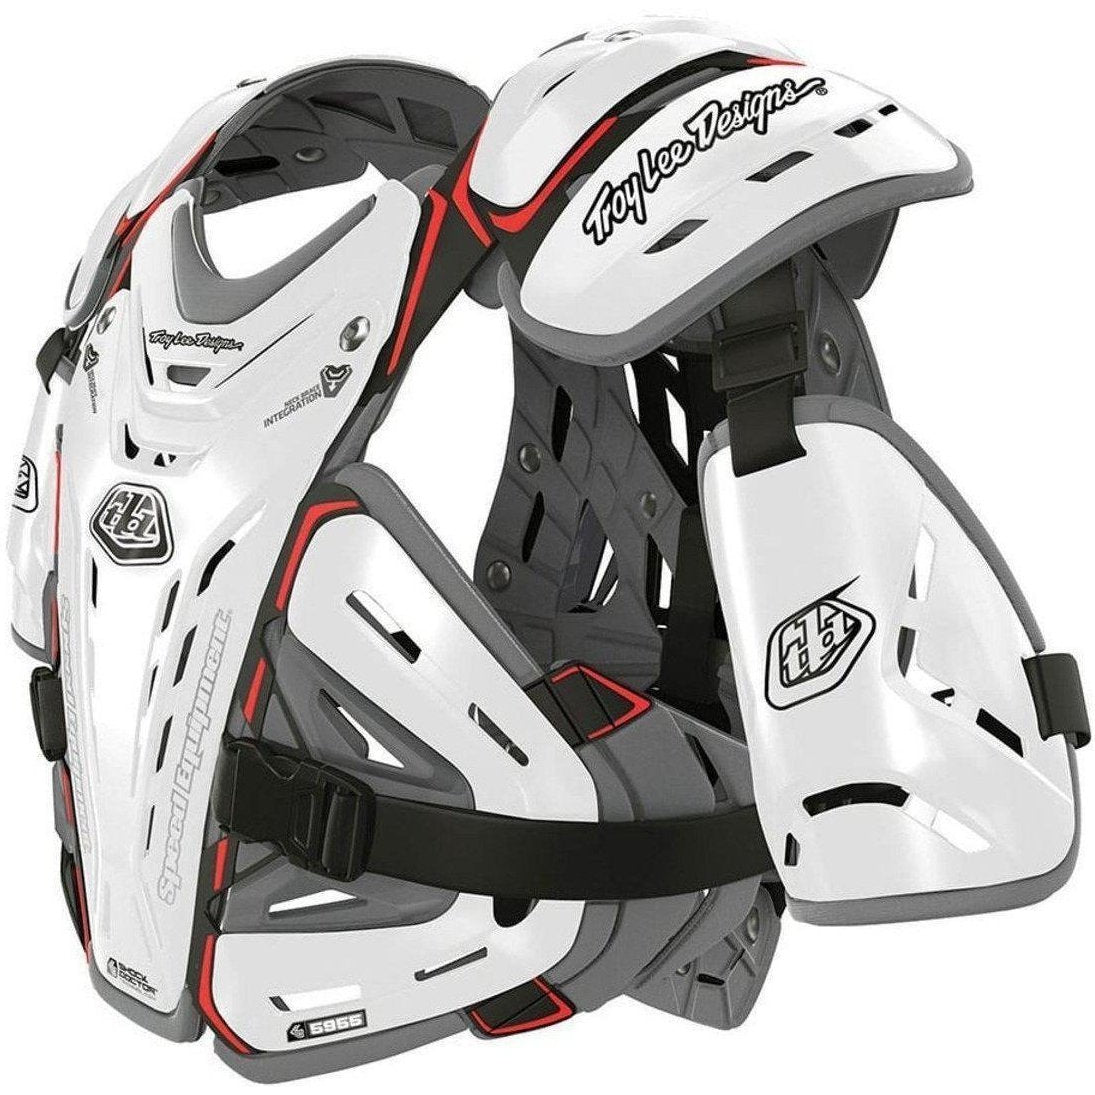 Protection - Troy Lee Designs BG 5955 Youth Chest Protector